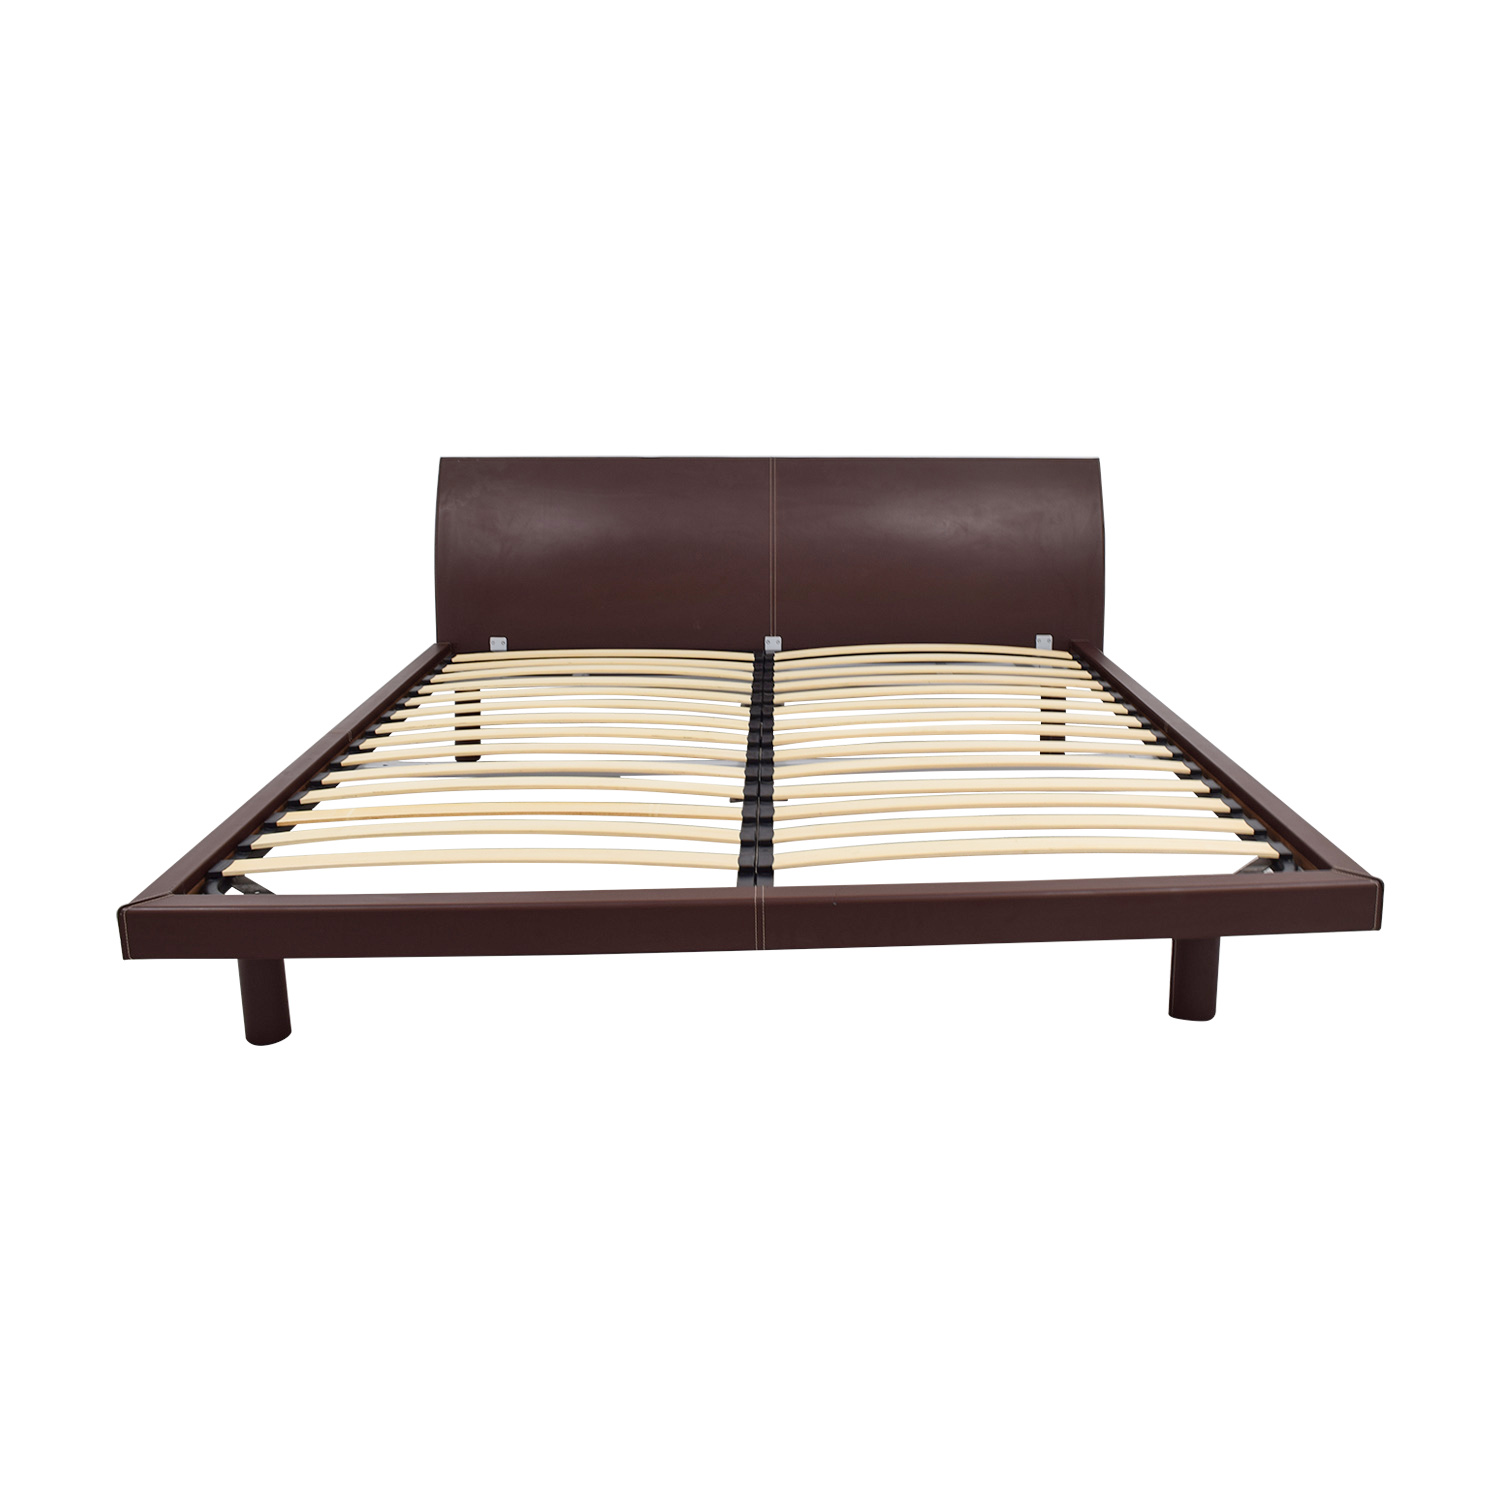 Calligaris Calligaris Concorde Leather King Bed nyc